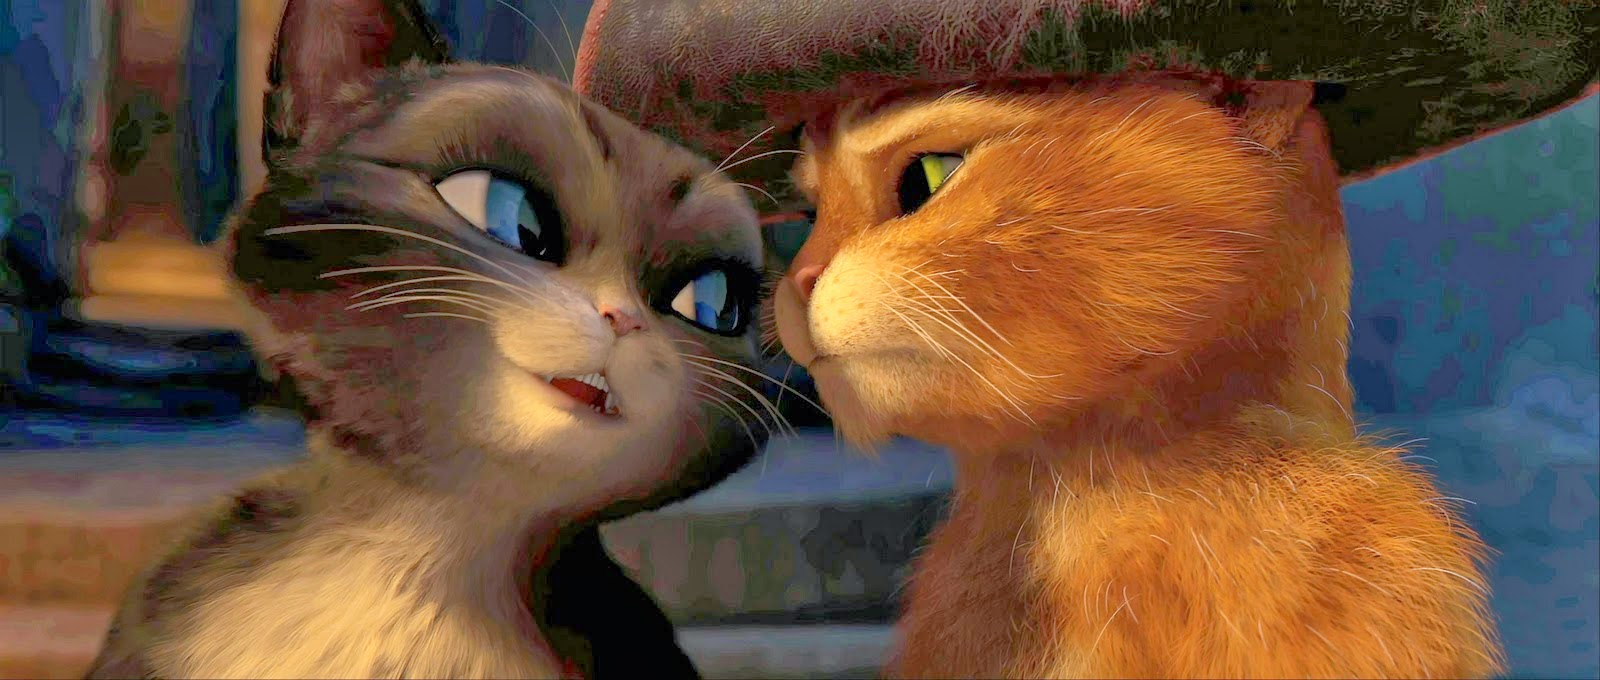 Puss in Boots 2011 Antonio Banderas animatedfilmreviews.filminspector.com